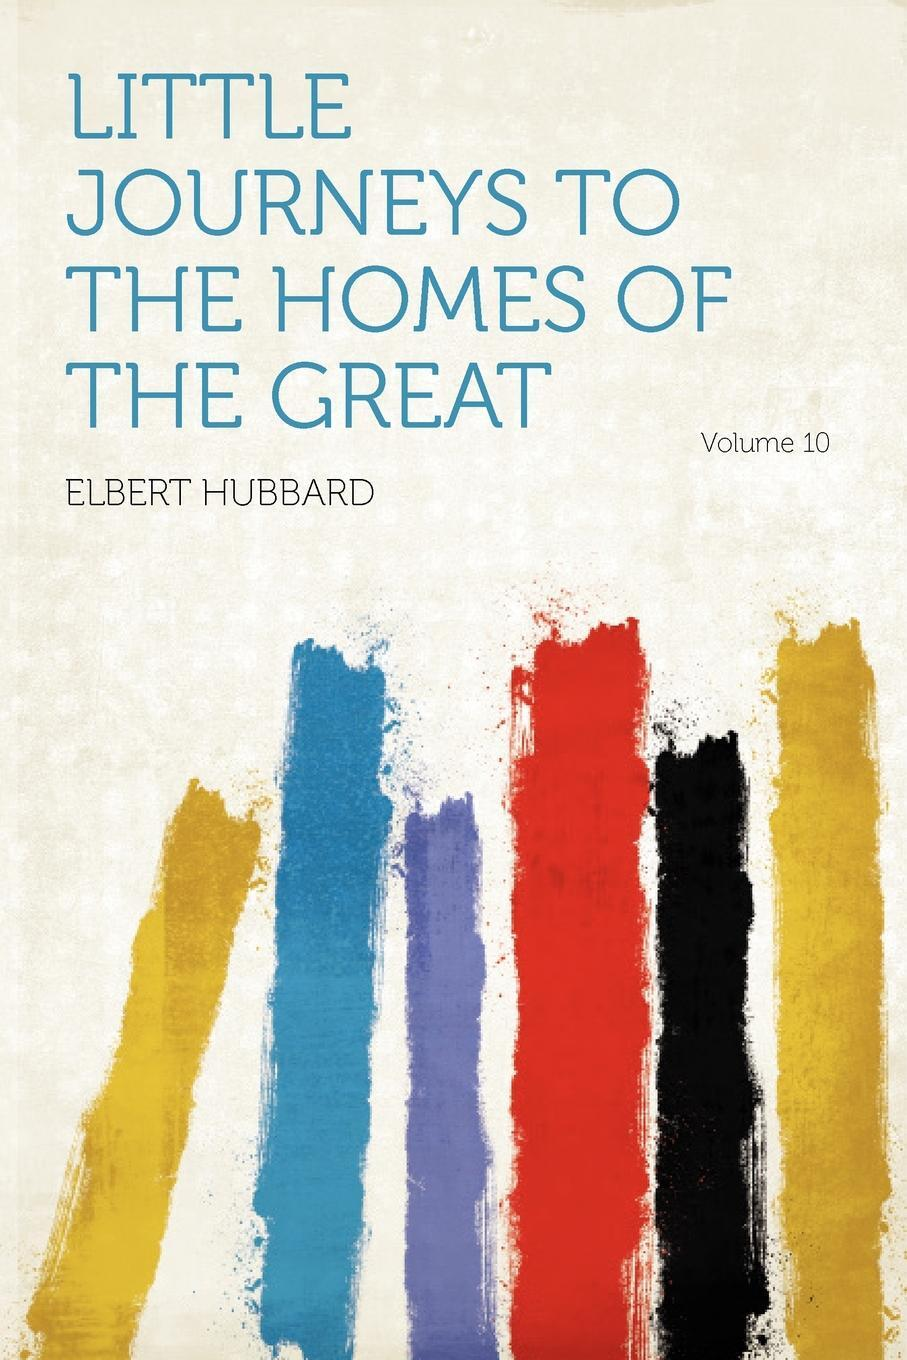 Little Journeys to the Homes of the Great Volume 10.